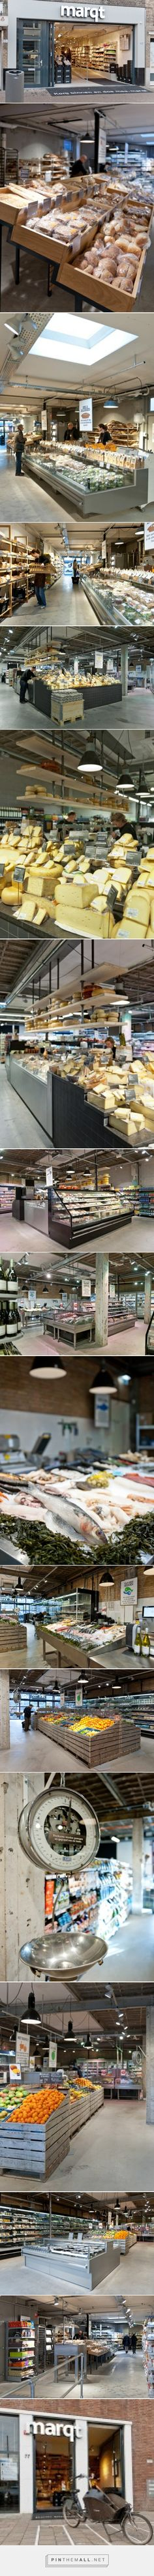 Produce and bread displays Bakery Display, Wine Display, Retail Interior Design, Retail Store Design, Deli Shop, Retail Facade, Supermarket Design, Food Retail, Suspension Design